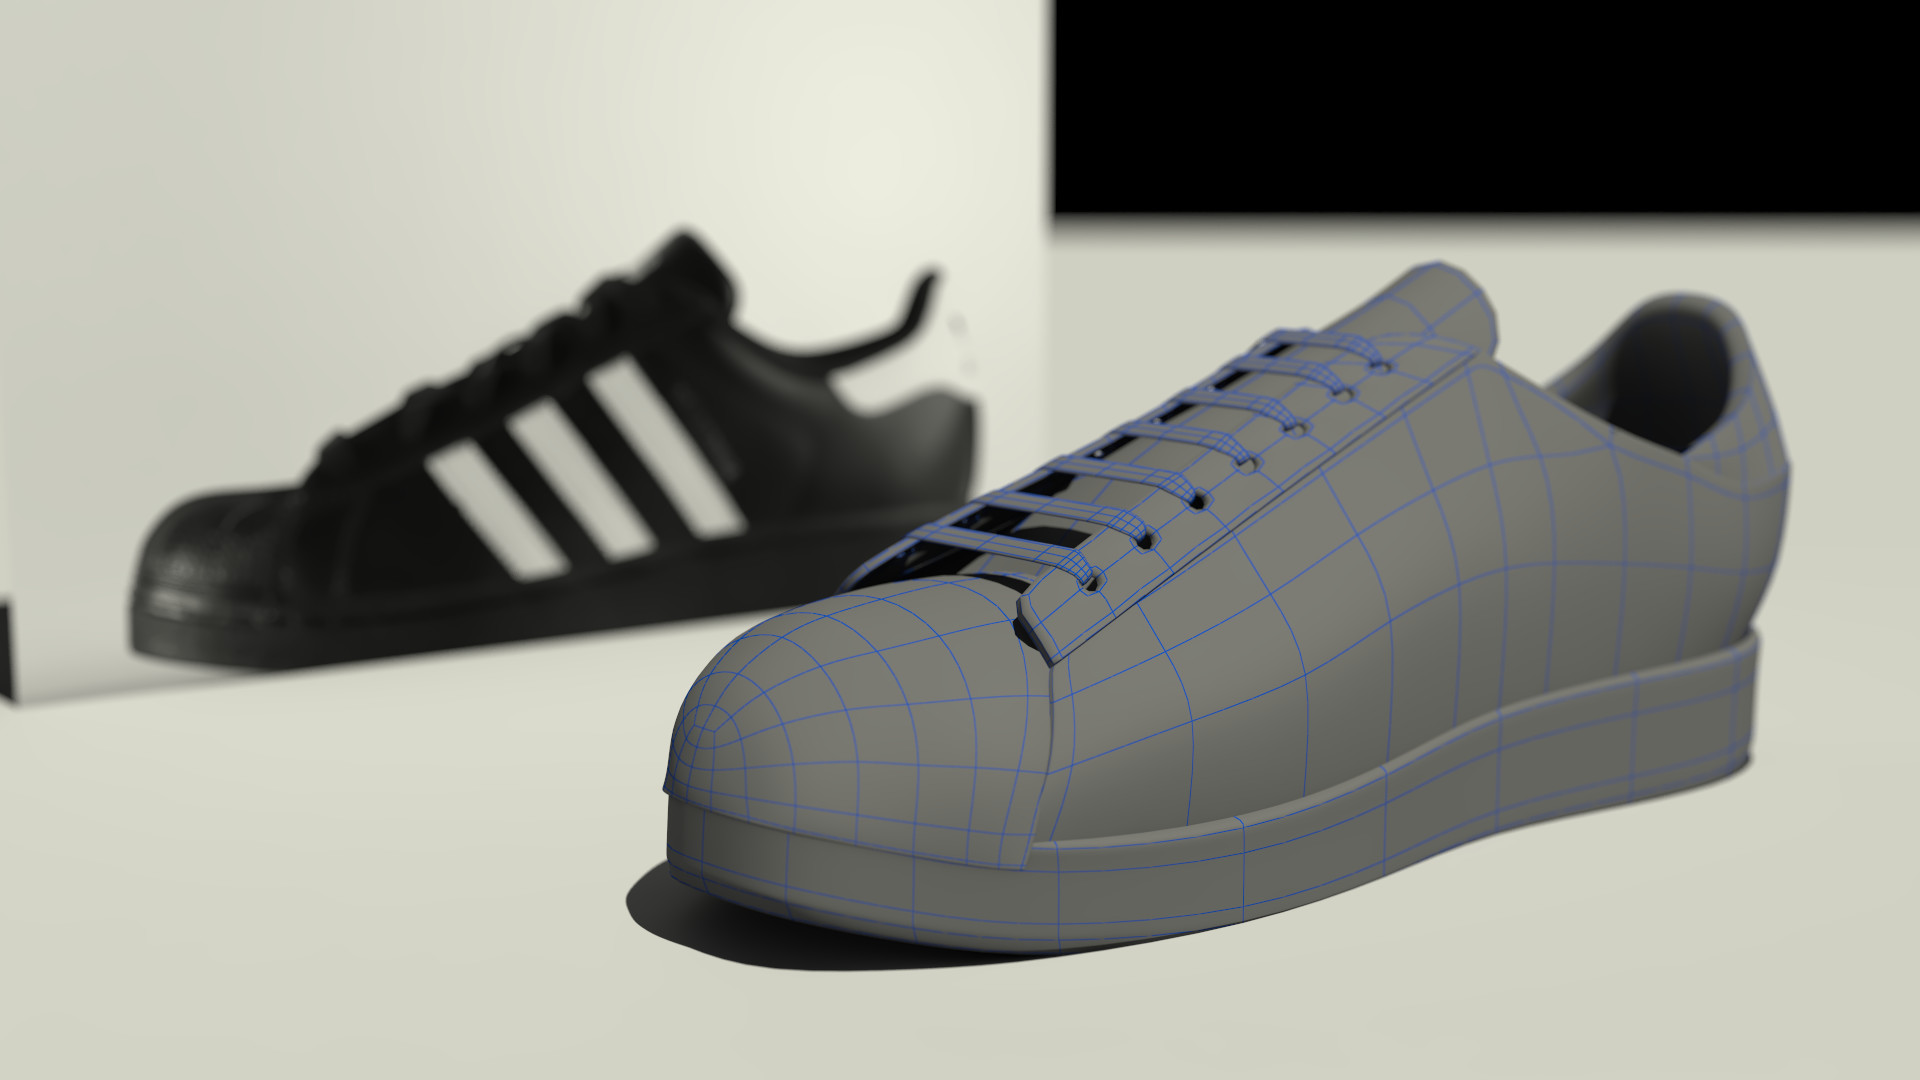 ArtStation - adidas super star 3d model, julian estrada